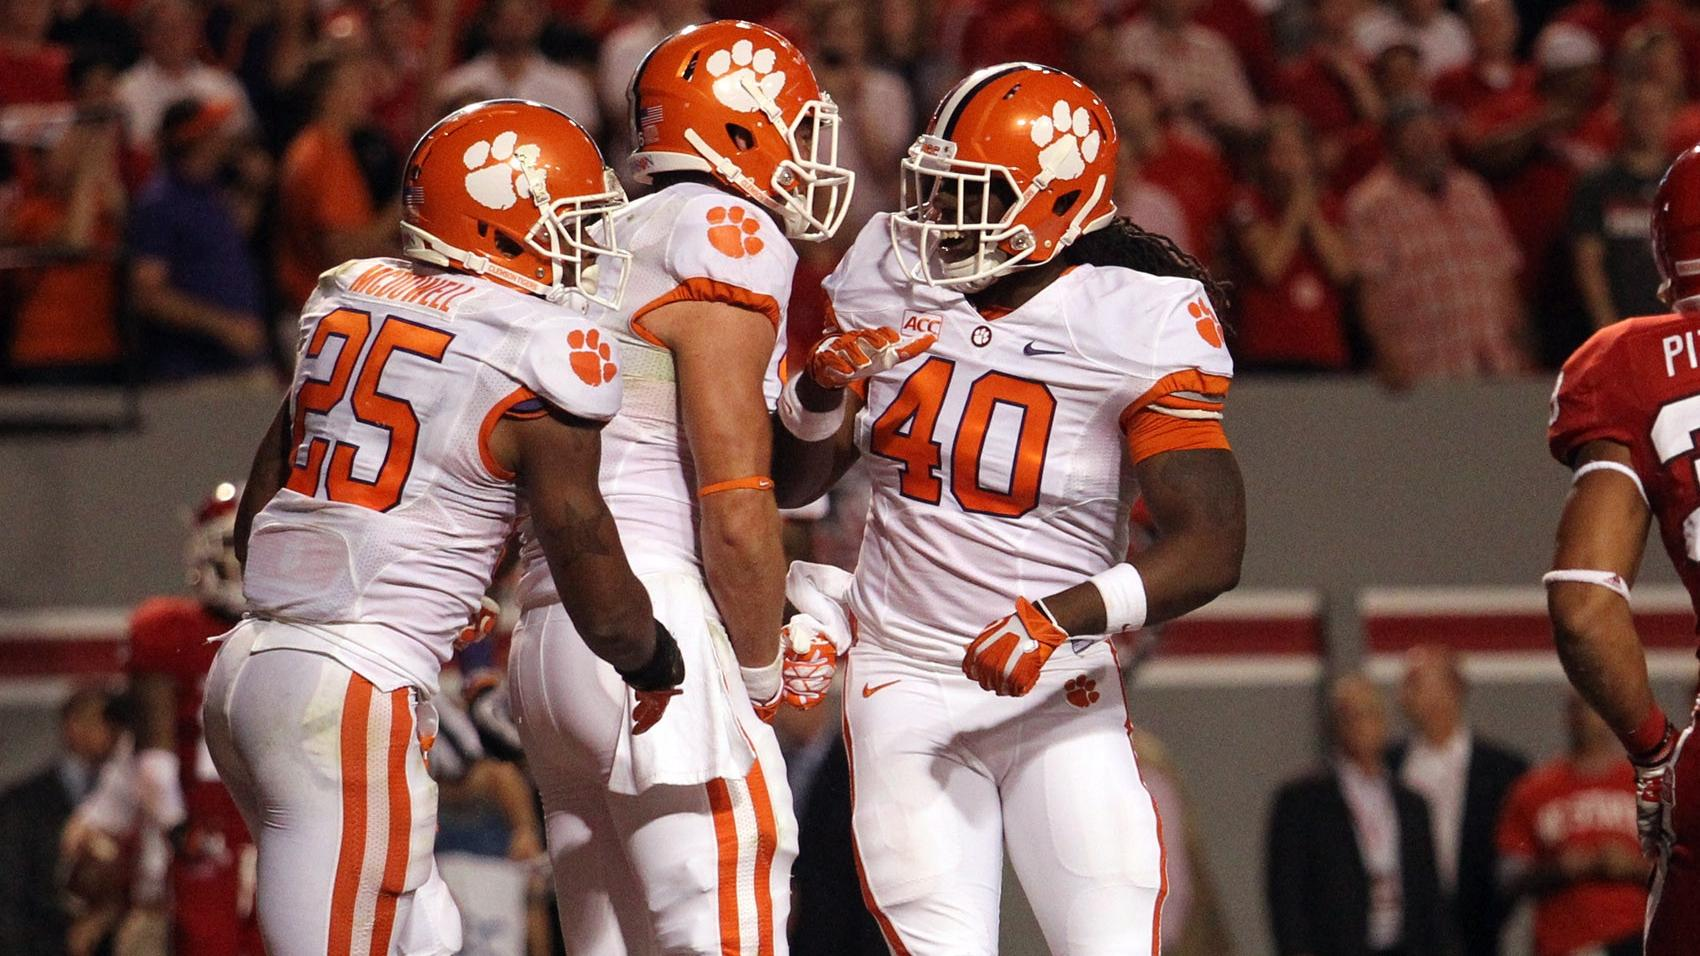 Clemson Football Video Report: 100 Yards with Darrell Smith